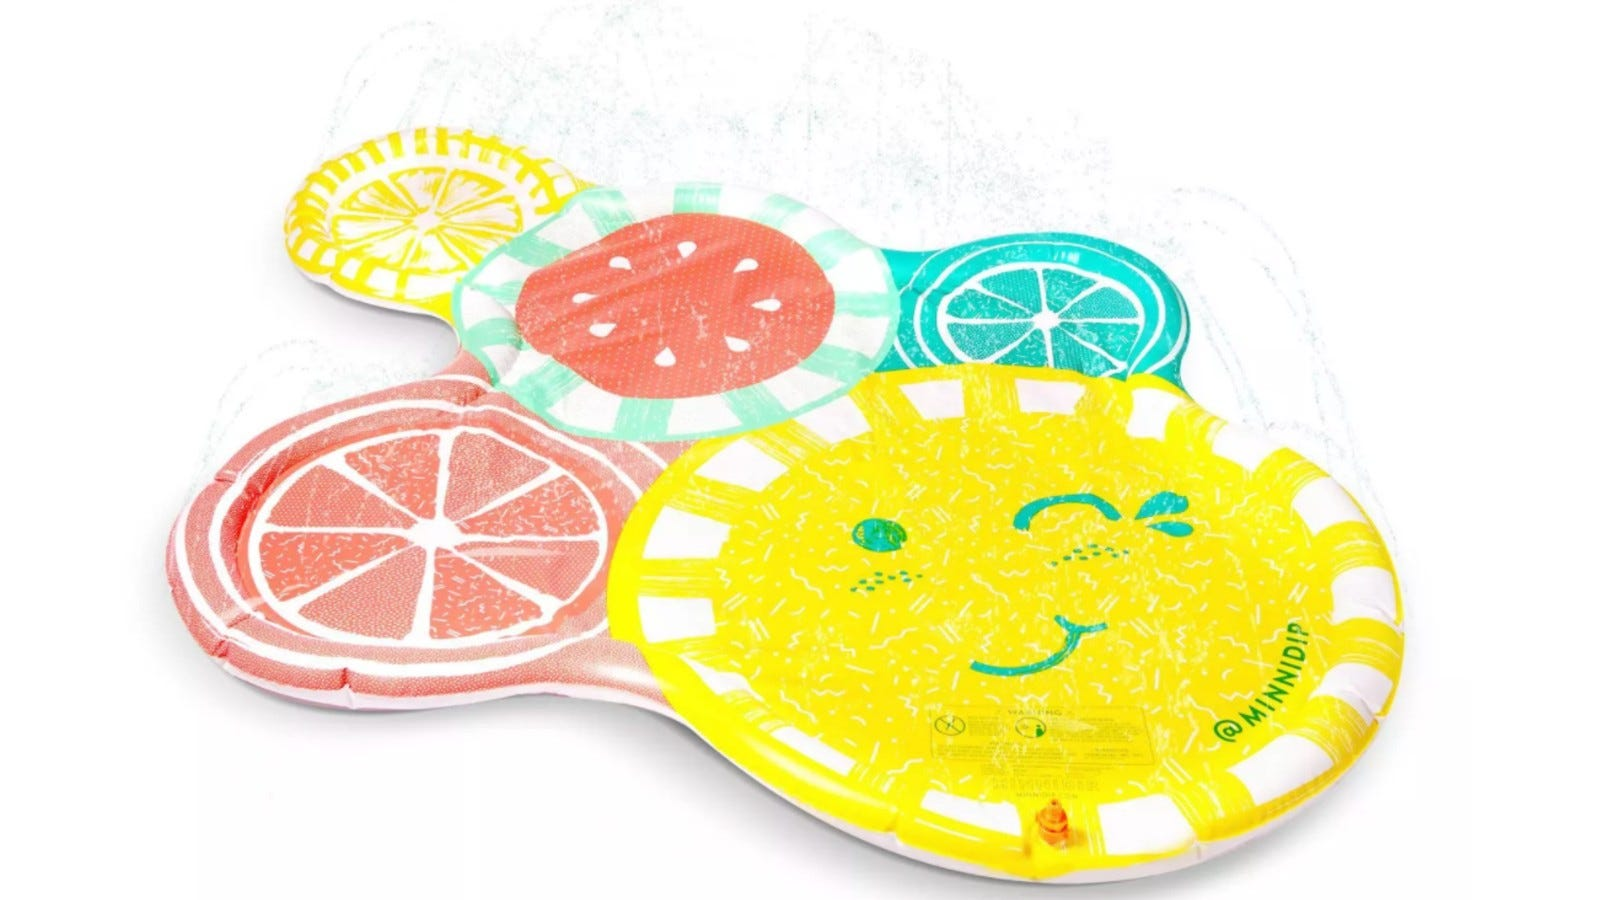 splash pad decorated with colorful fruit slices like a lemon and watermelon